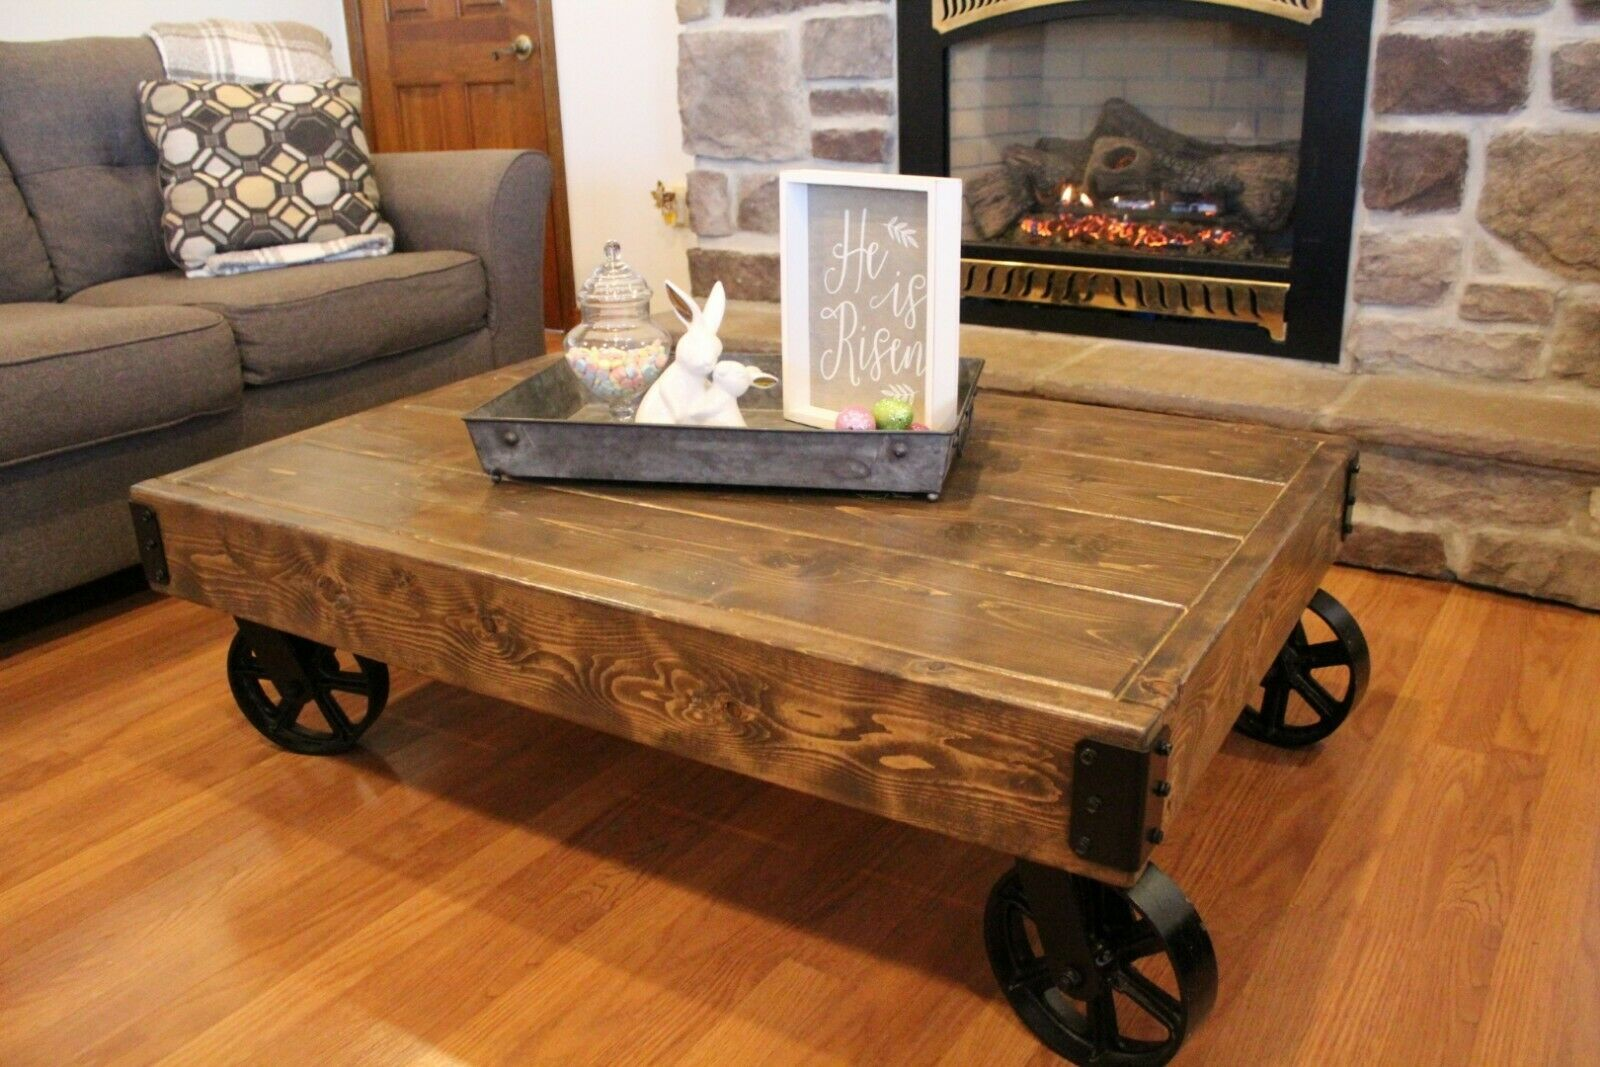 Coffee Table With Iron Caster Wheels Rustic Cart Vintage Design Wood Rustic Table Ideas Of Rustic Table Coffee Table Rustic Table Extendable Coffee Table Rustic coffee table with wheels